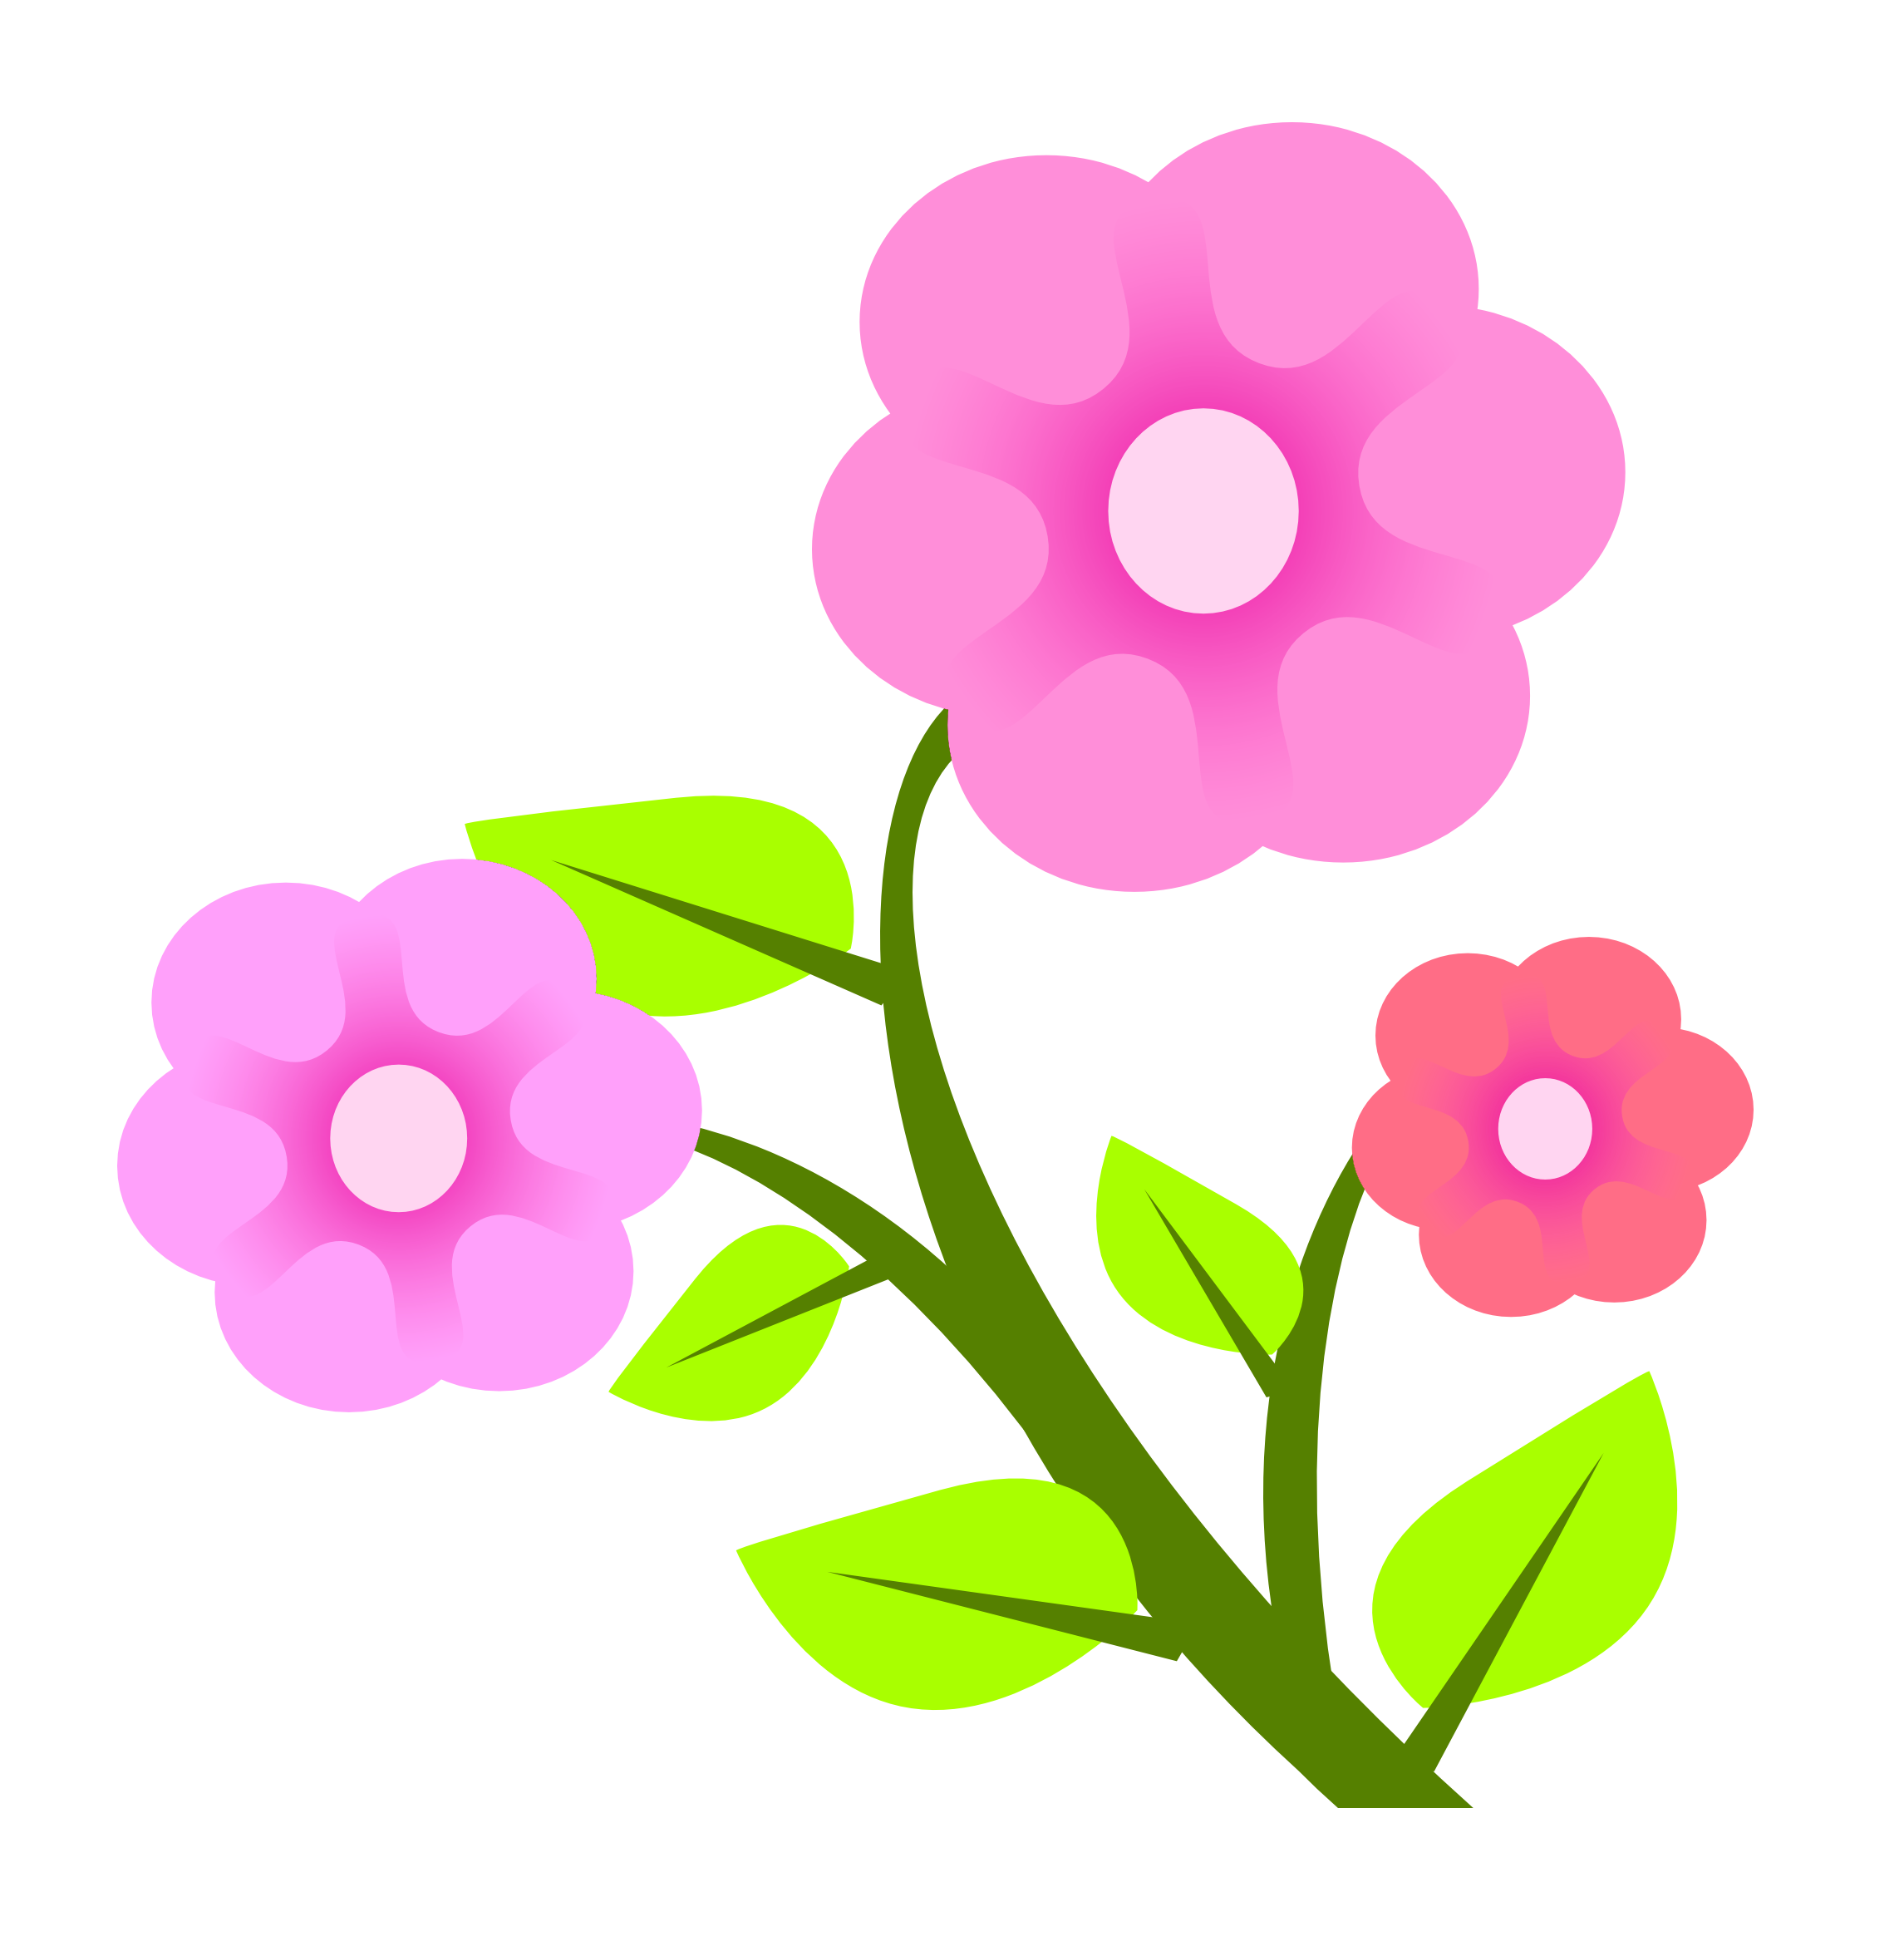 Flower Vector Png Image Purepng Free Transparent Cc0 Png Image